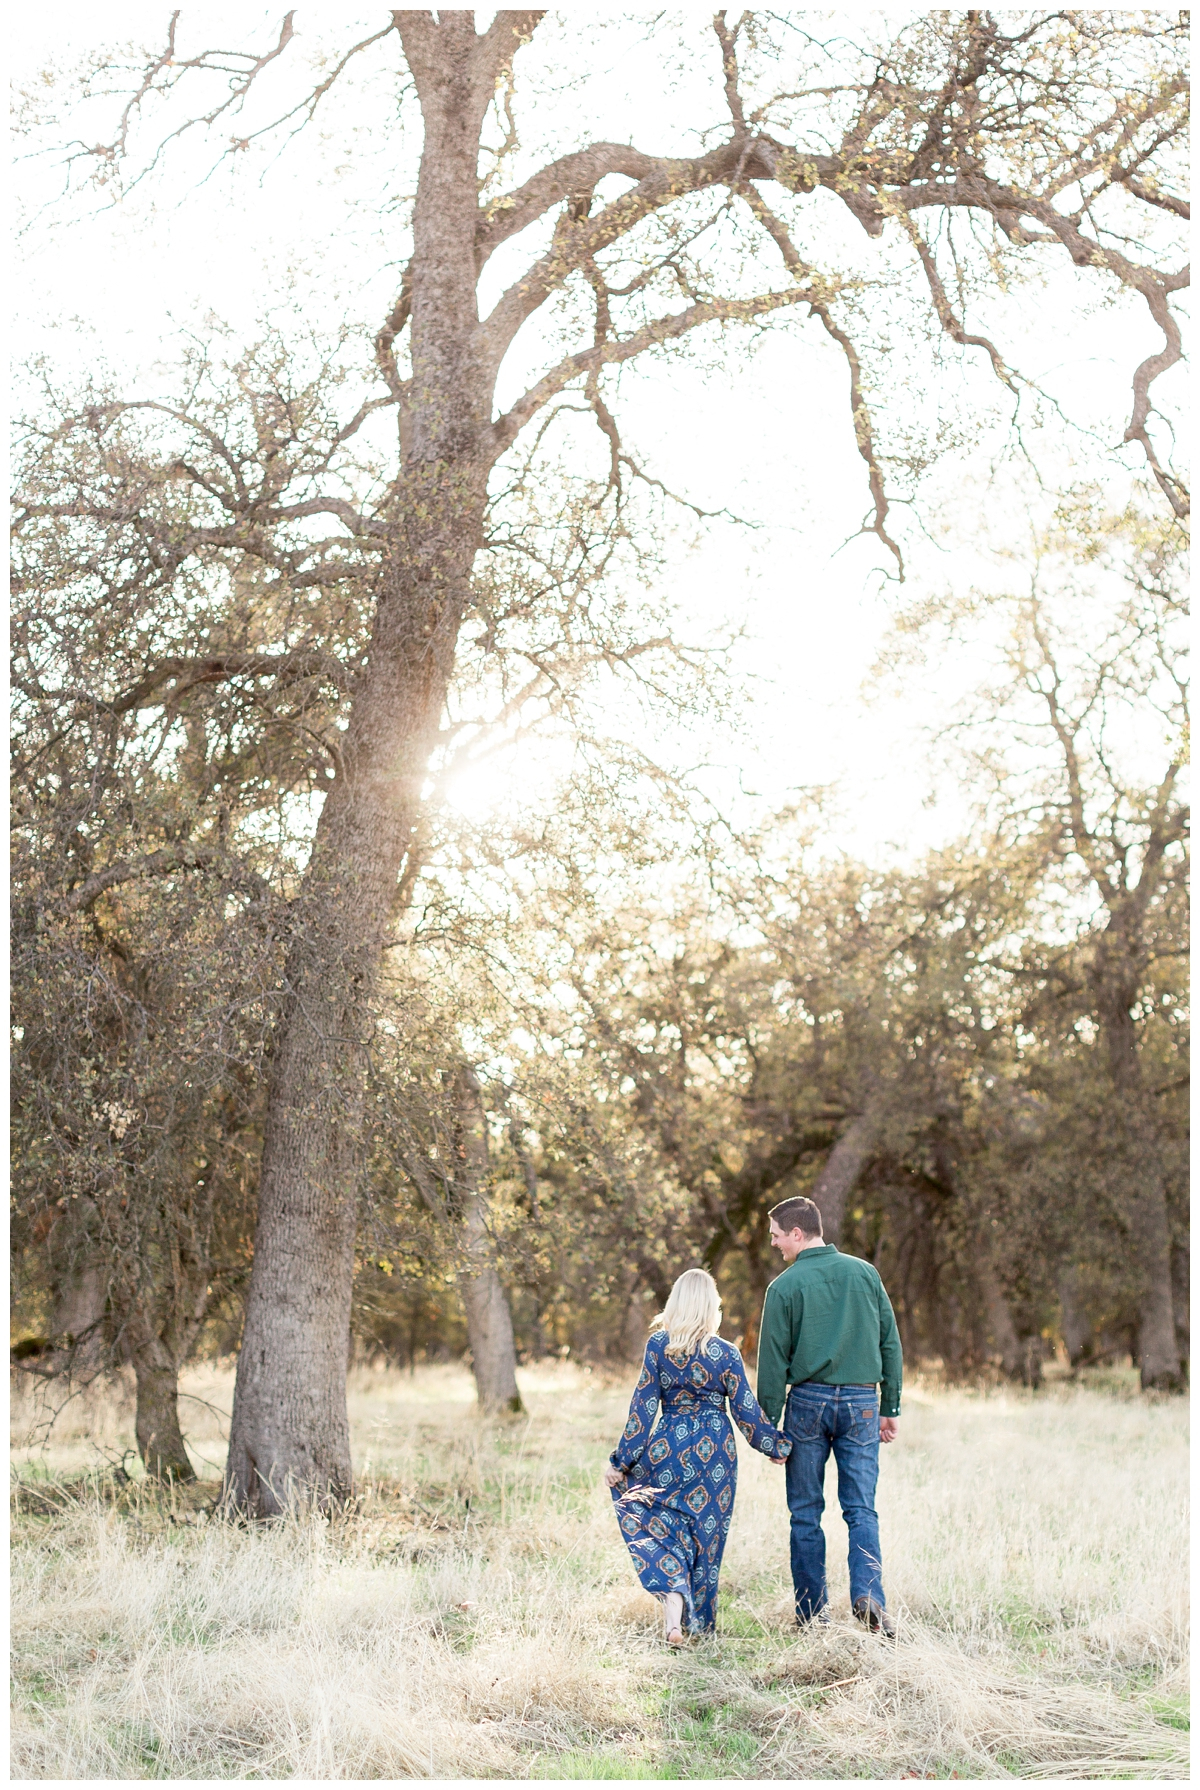 Northern California wedding photographer captures an engaged couple at sunset in Chico California